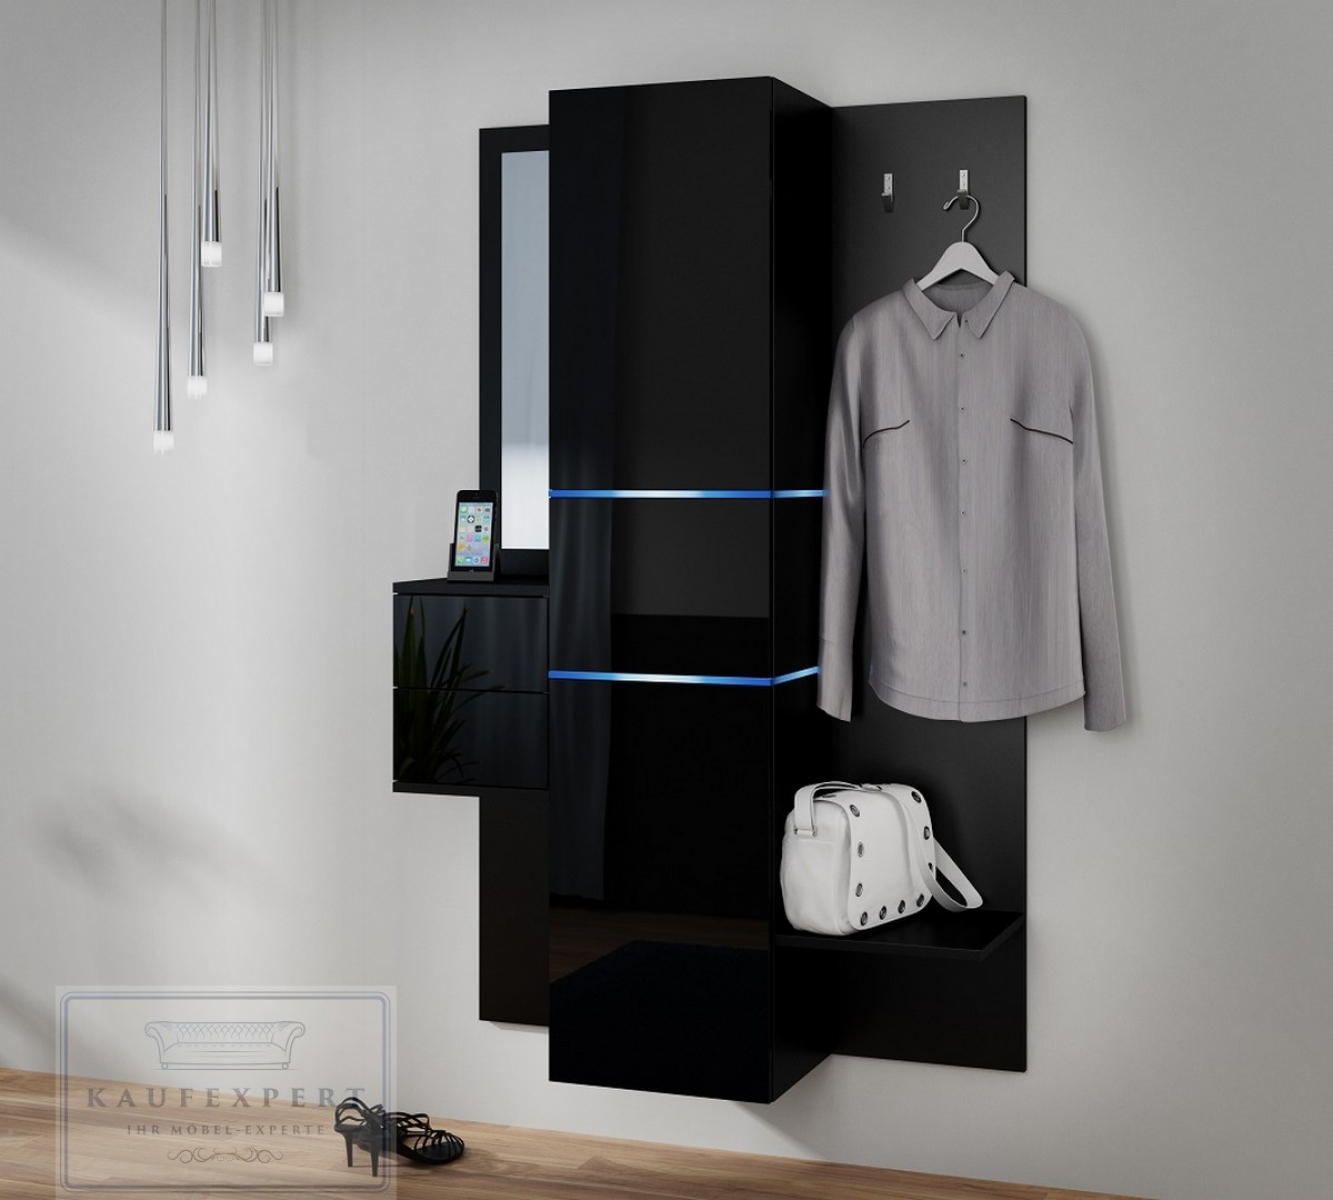 kaufexpert sofort garderobe camino schwarz hochglanz mit. Black Bedroom Furniture Sets. Home Design Ideas